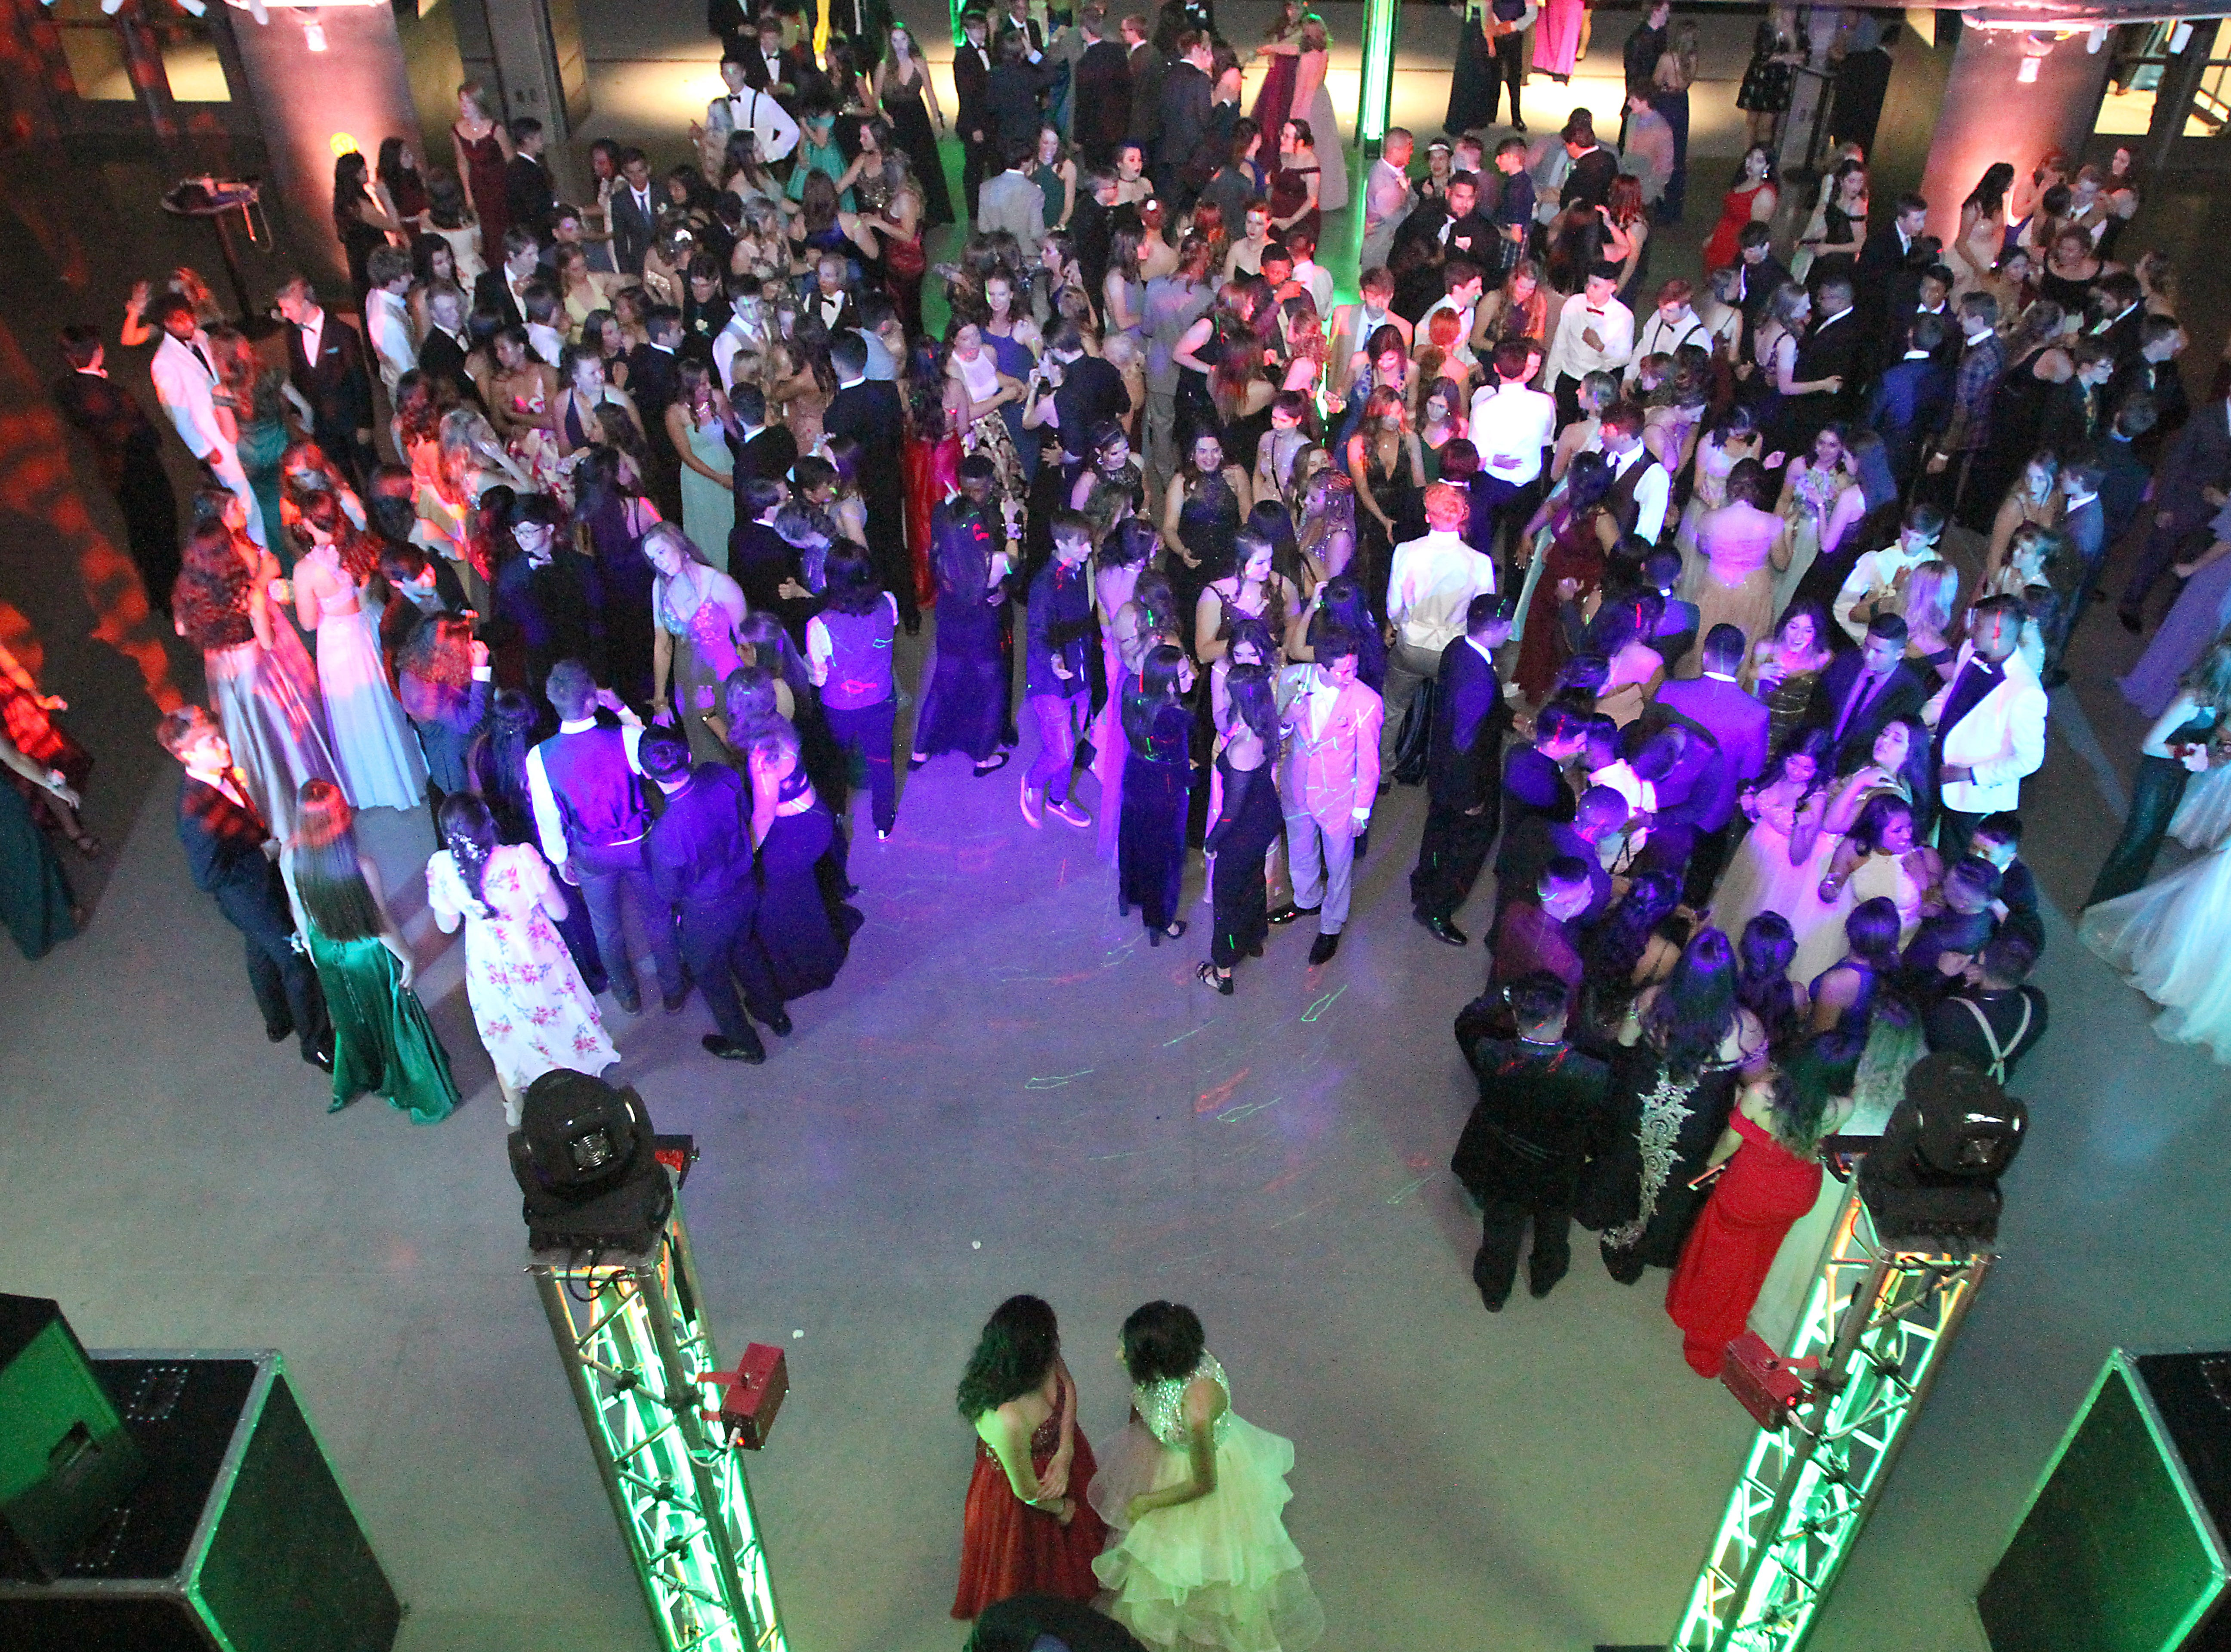 Joel Blocker / For the ColoradoanFort Collins High School students pack the dance floor during their school prom held at Canvas stadium Saturday night.